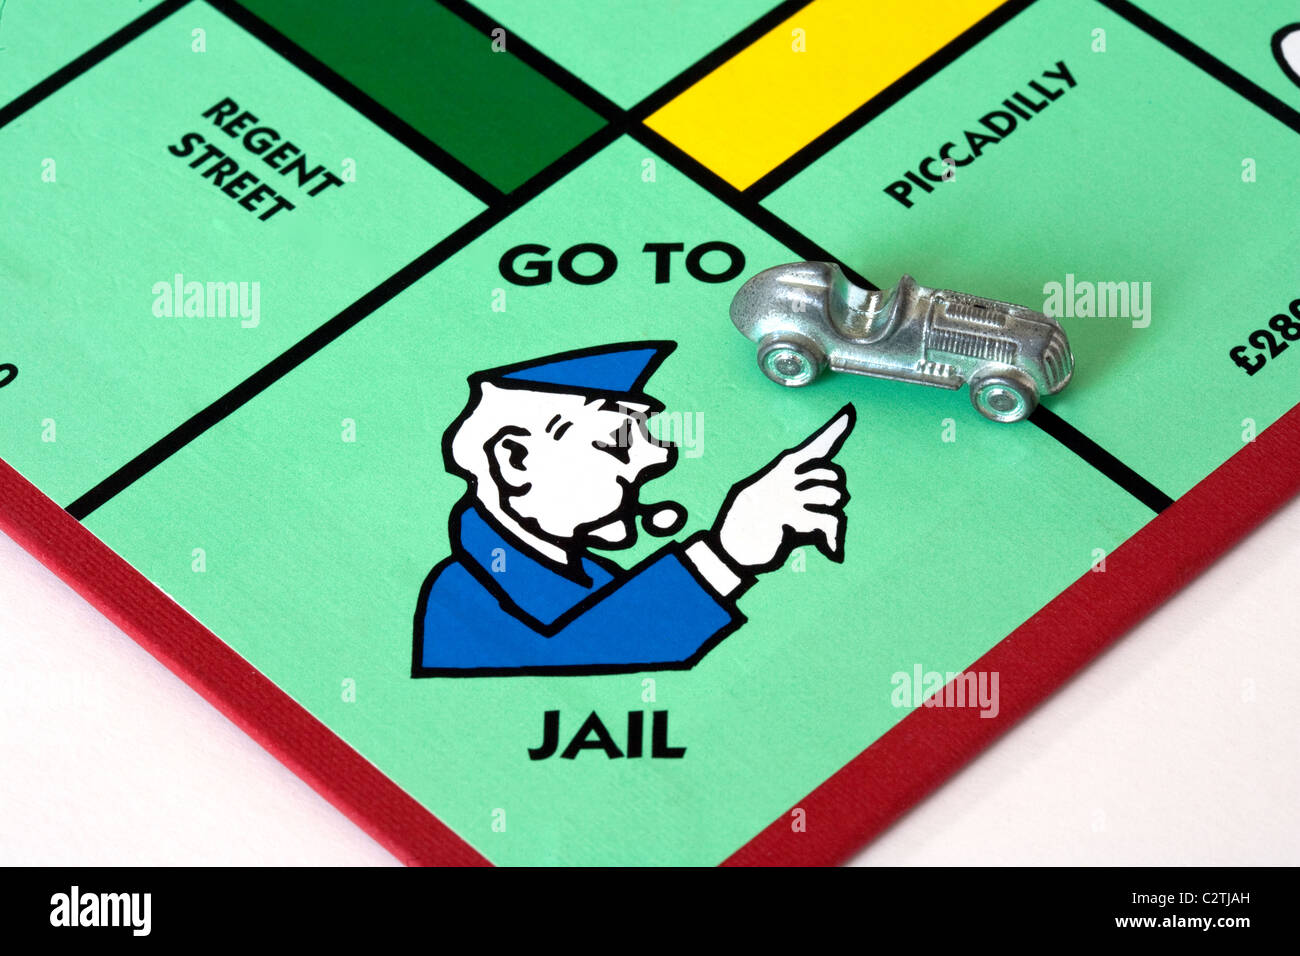 A car on the 'Go to Jail' space on a monopoly game board UK - Stock Image